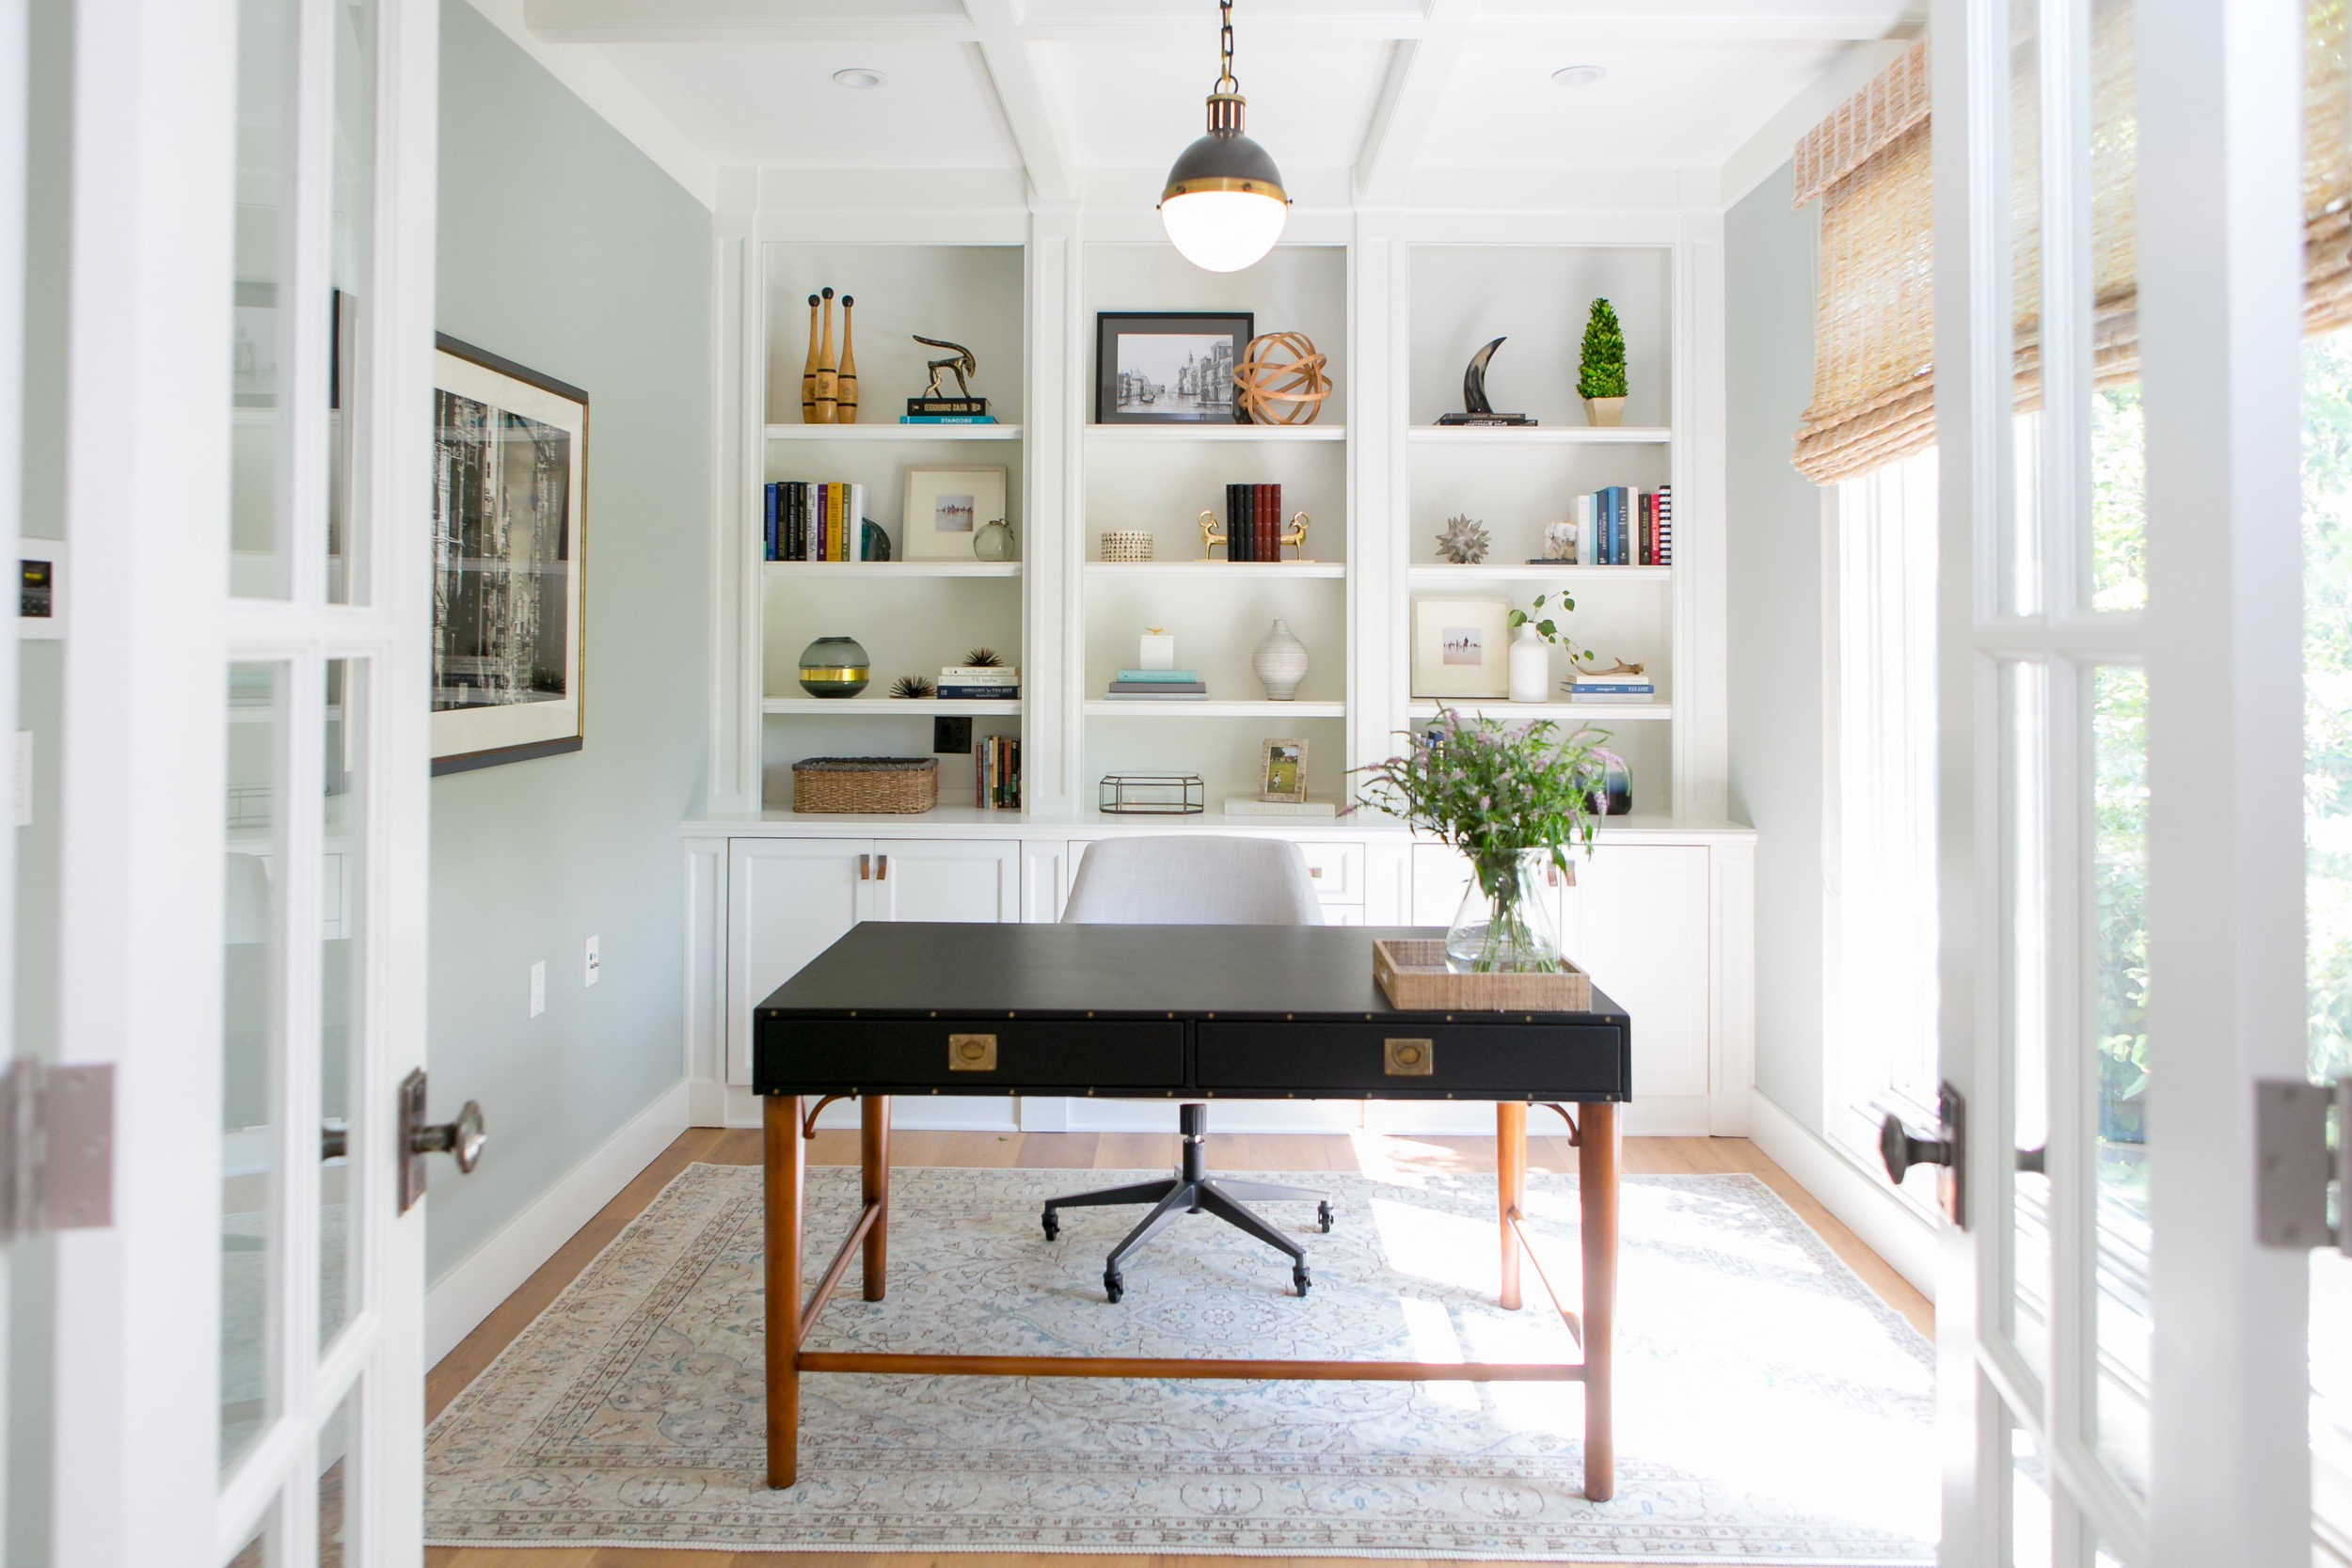 Traditional Home Office Remodel With Modern Accents (View 44 of 50)